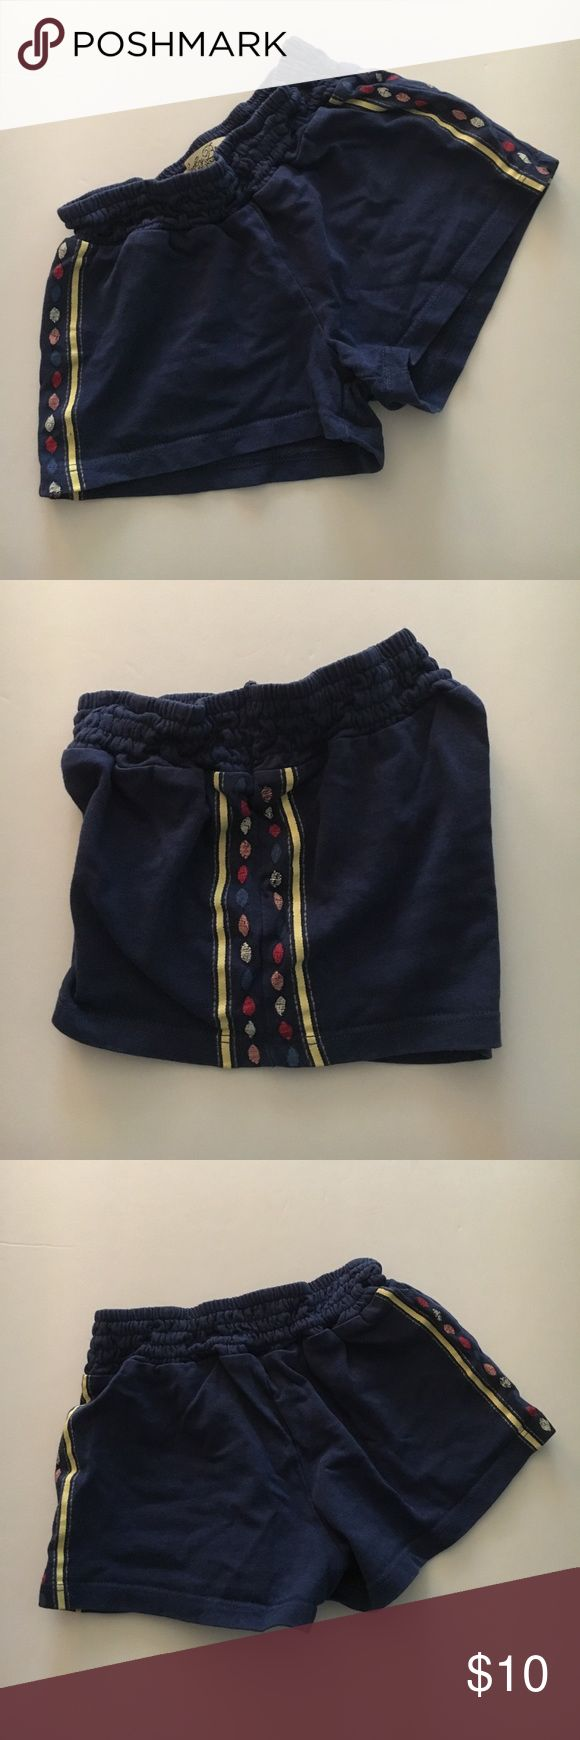 Lucky Brand Navy Knit Tribal Shorts size 24 Months These shorts are in excellent condition! Thanks so much for checking out this item today! We know that the shipping price is kinda ridiculous, so we suggest you bundle to get more for your money! Who doesn't love saving some cash? I do not trade. Please only leave kind comments. Reasonable offers welcome 😊 Lucky Brand Bottoms Shorts